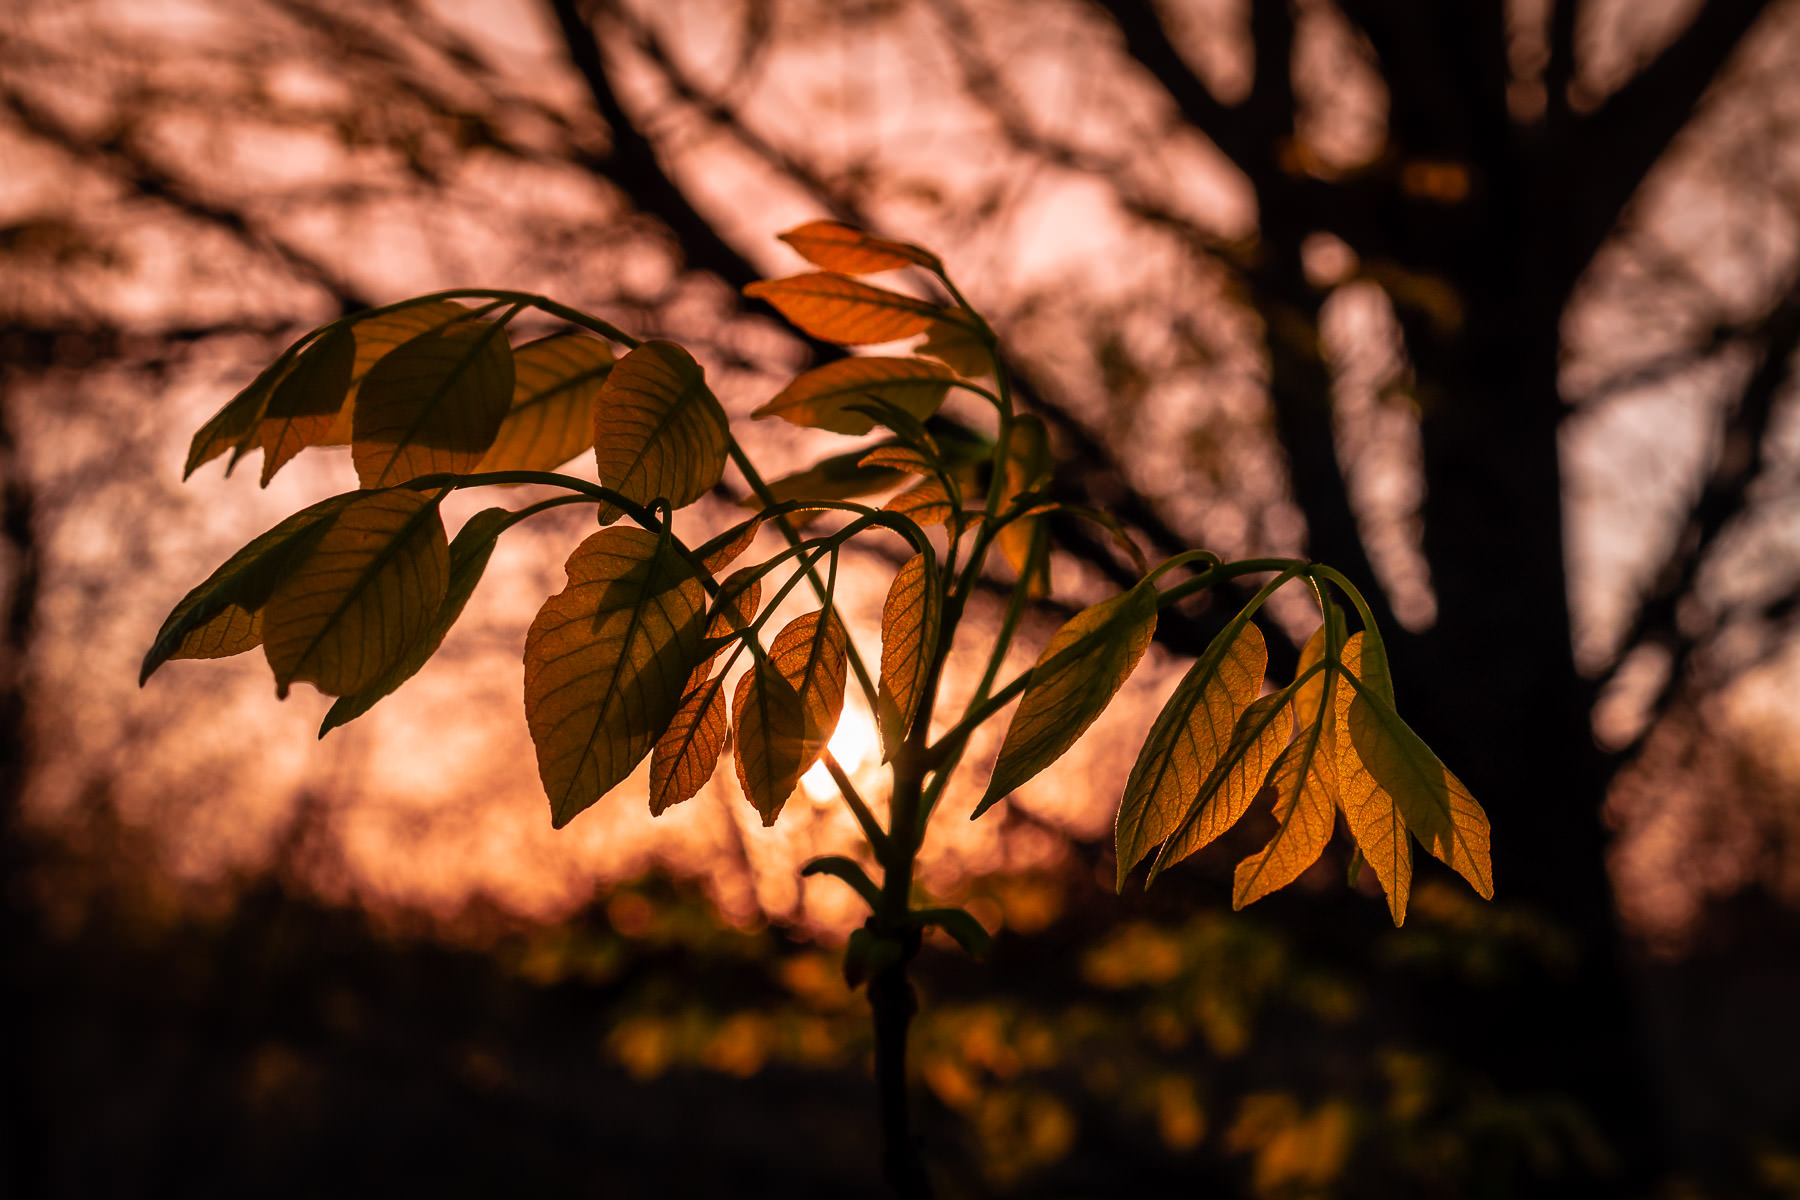 The first light of morning illuminates leaves at Fort Worth, Texas' Tandy Hills Natural Area.